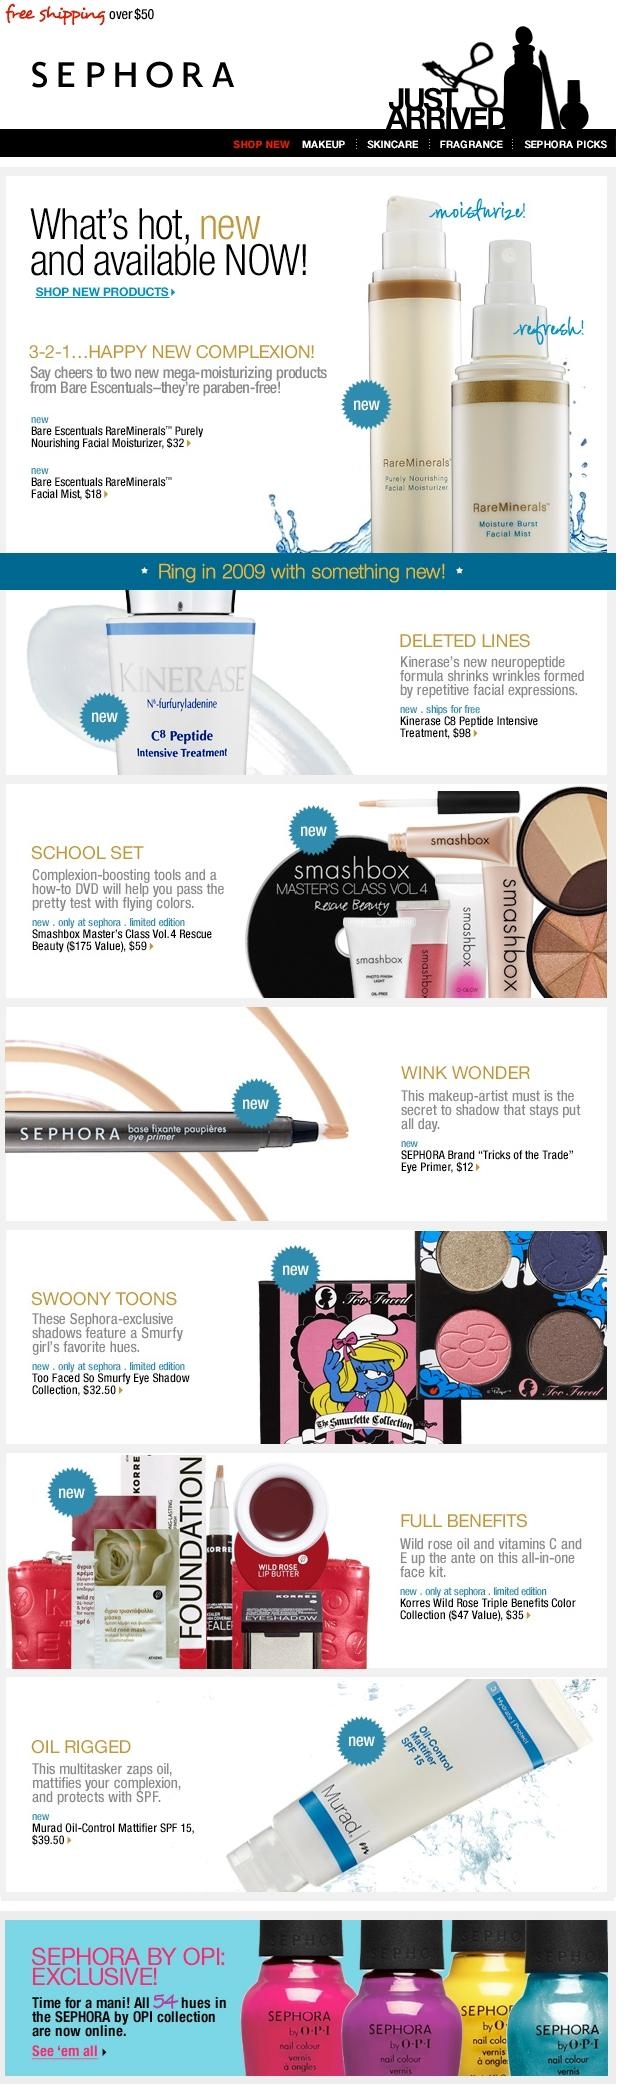 Sephora US - Objet : Brand new year, brand new products